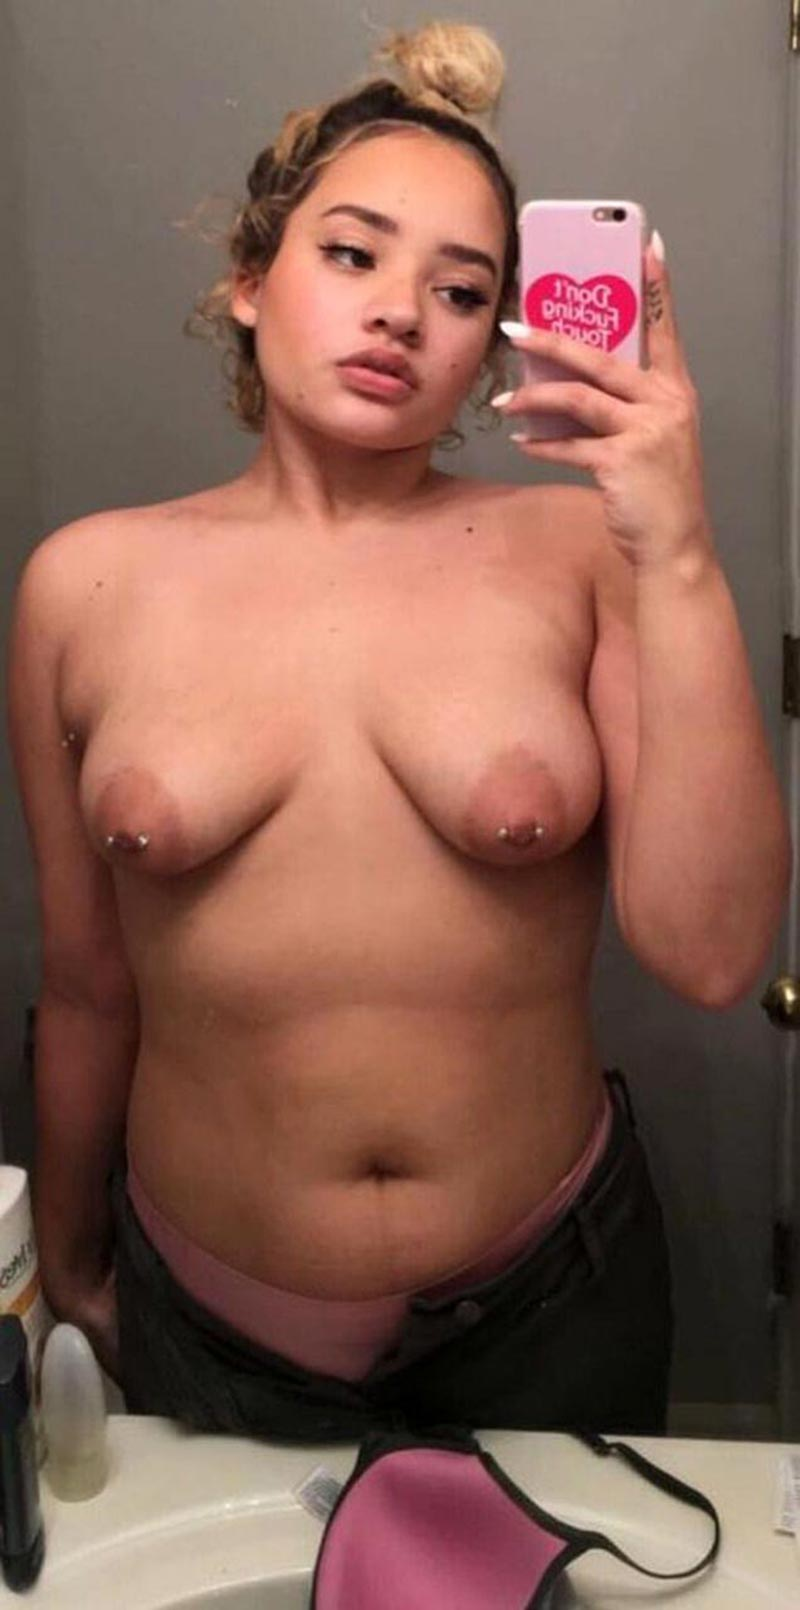 Kim johansson leaked selfies nudes (53 photo)